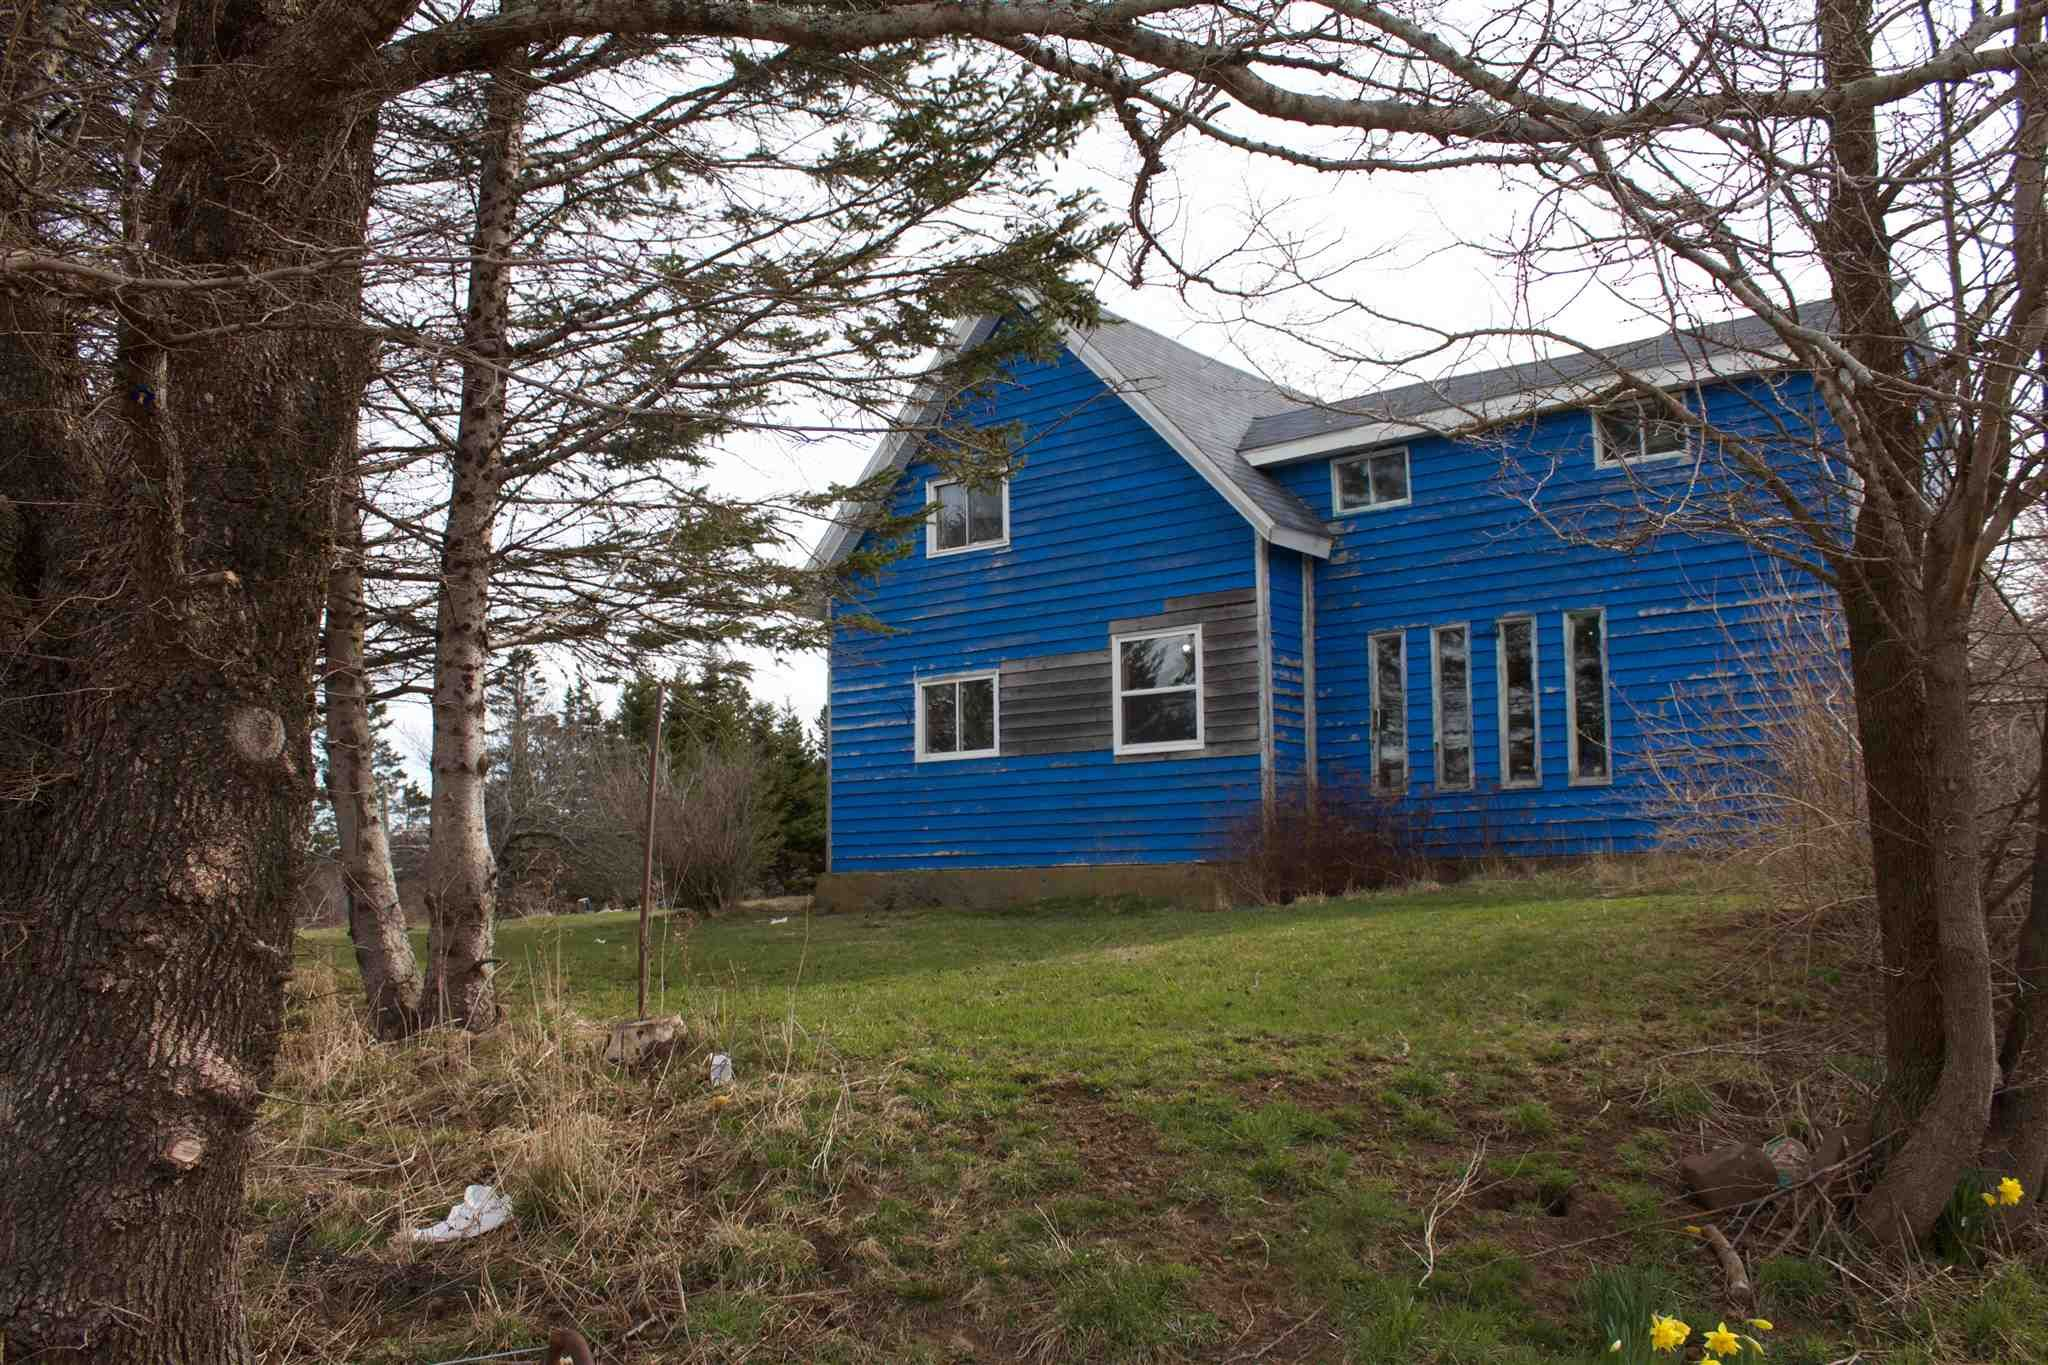 Main Photo: 362 GULLIVERS COVE Road in Gullivers Cove: 401-Digby County Residential for sale (Annapolis Valley)  : MLS®# 202108748